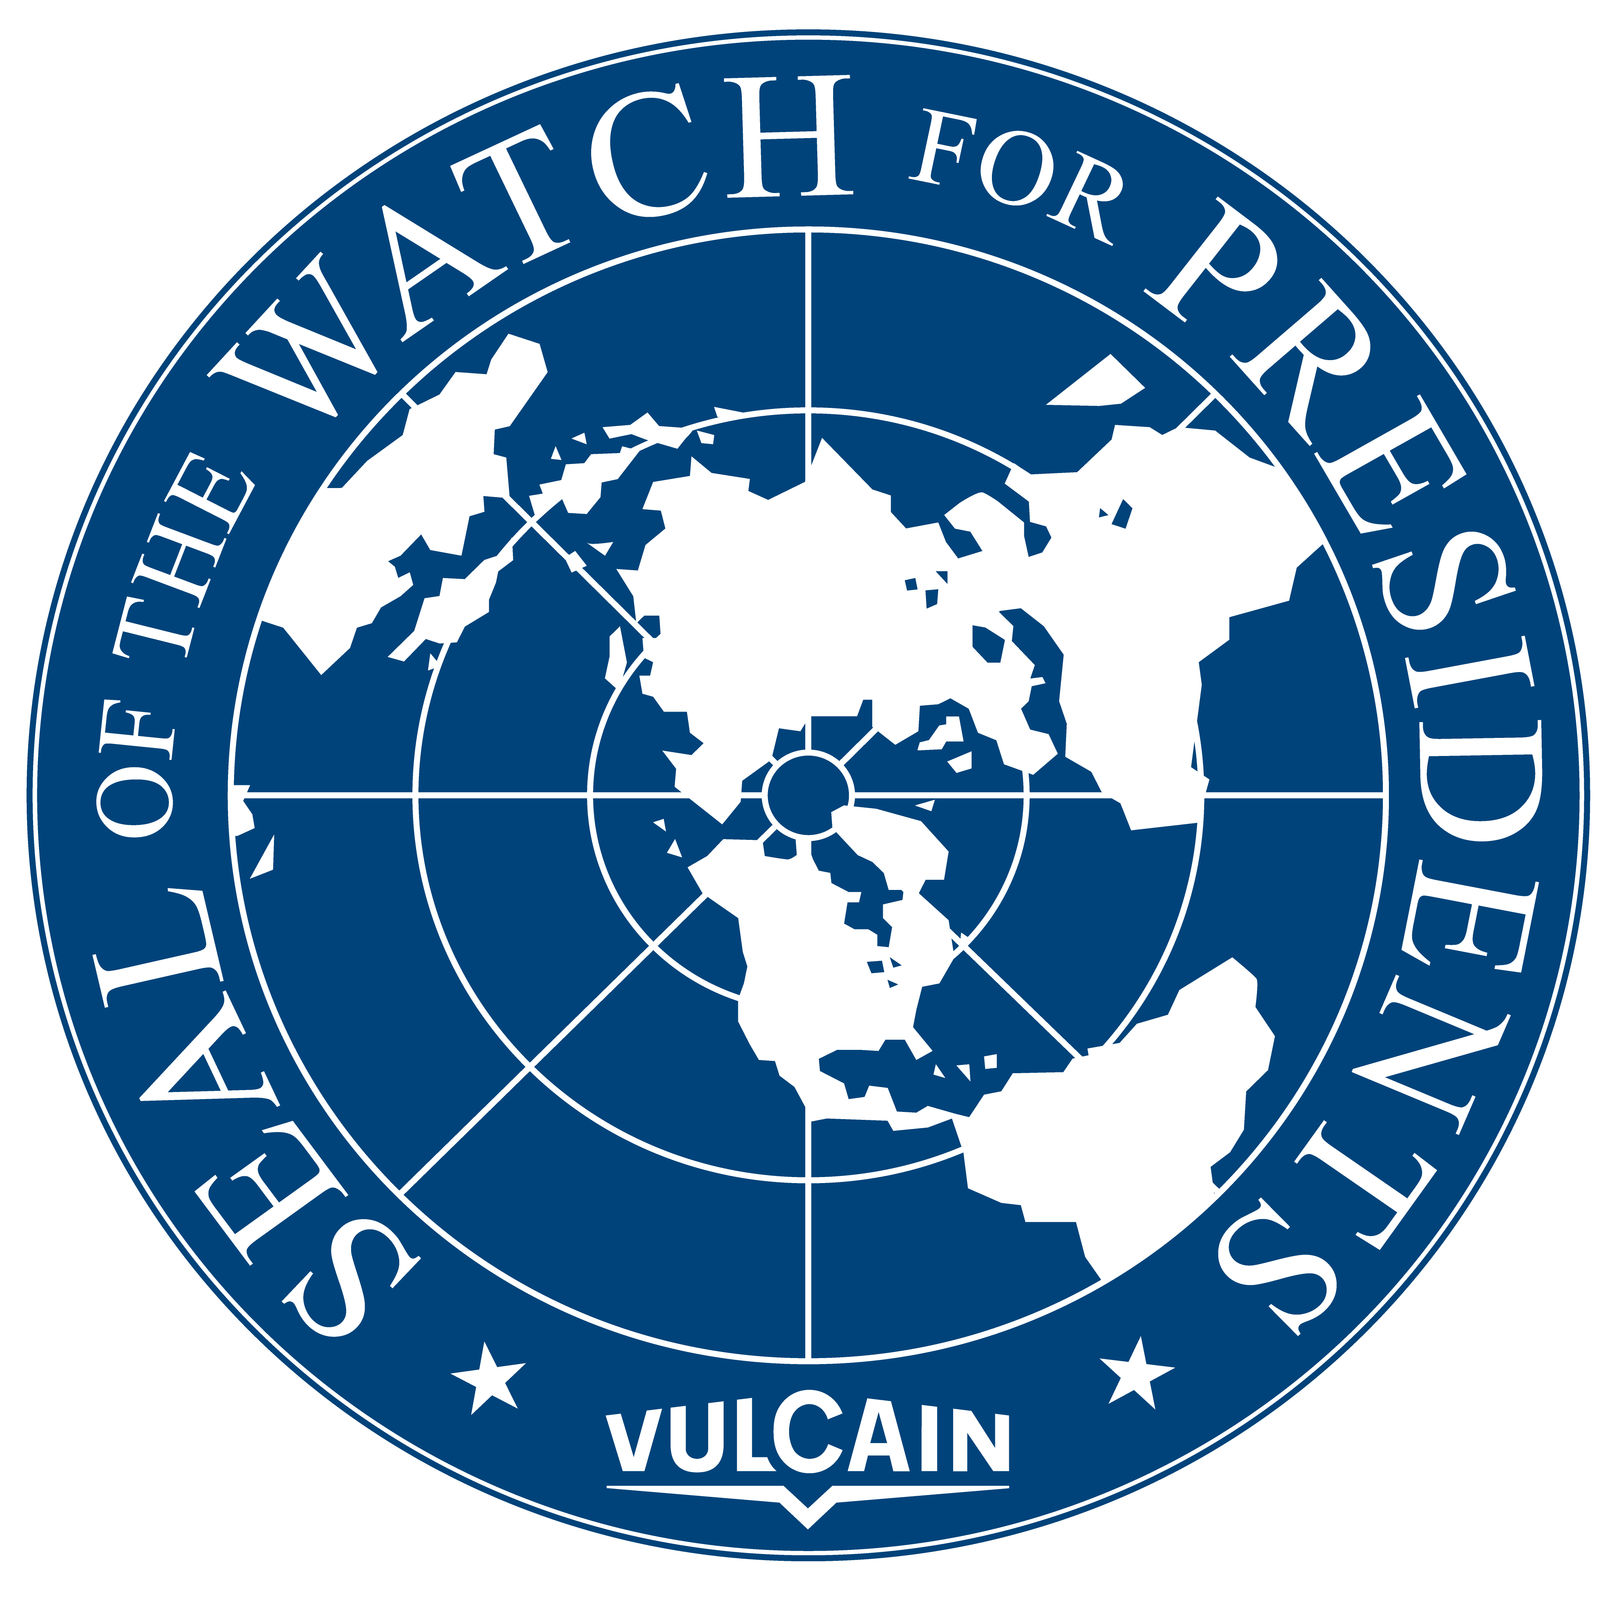 Vulcain Watches